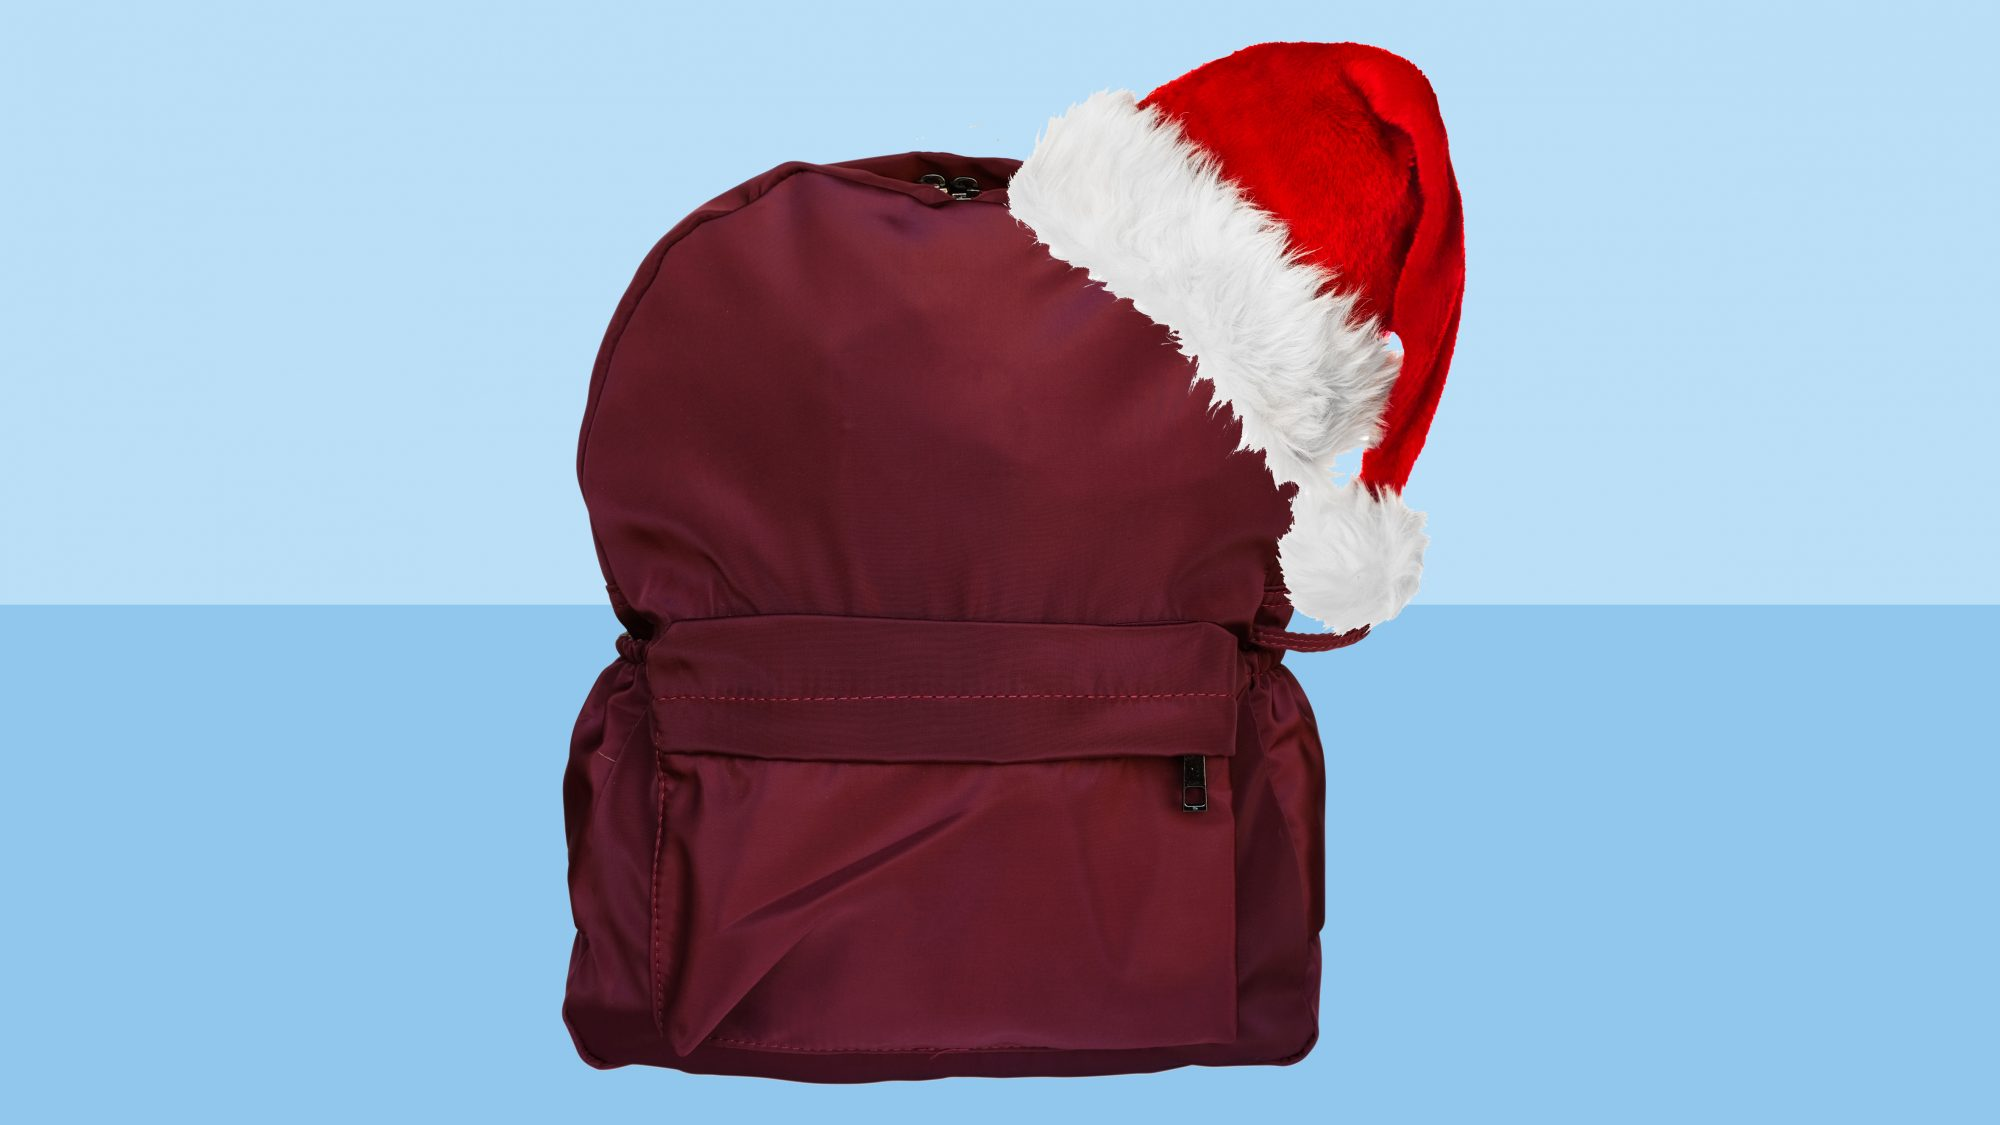 backpack with Santa hat on blue background